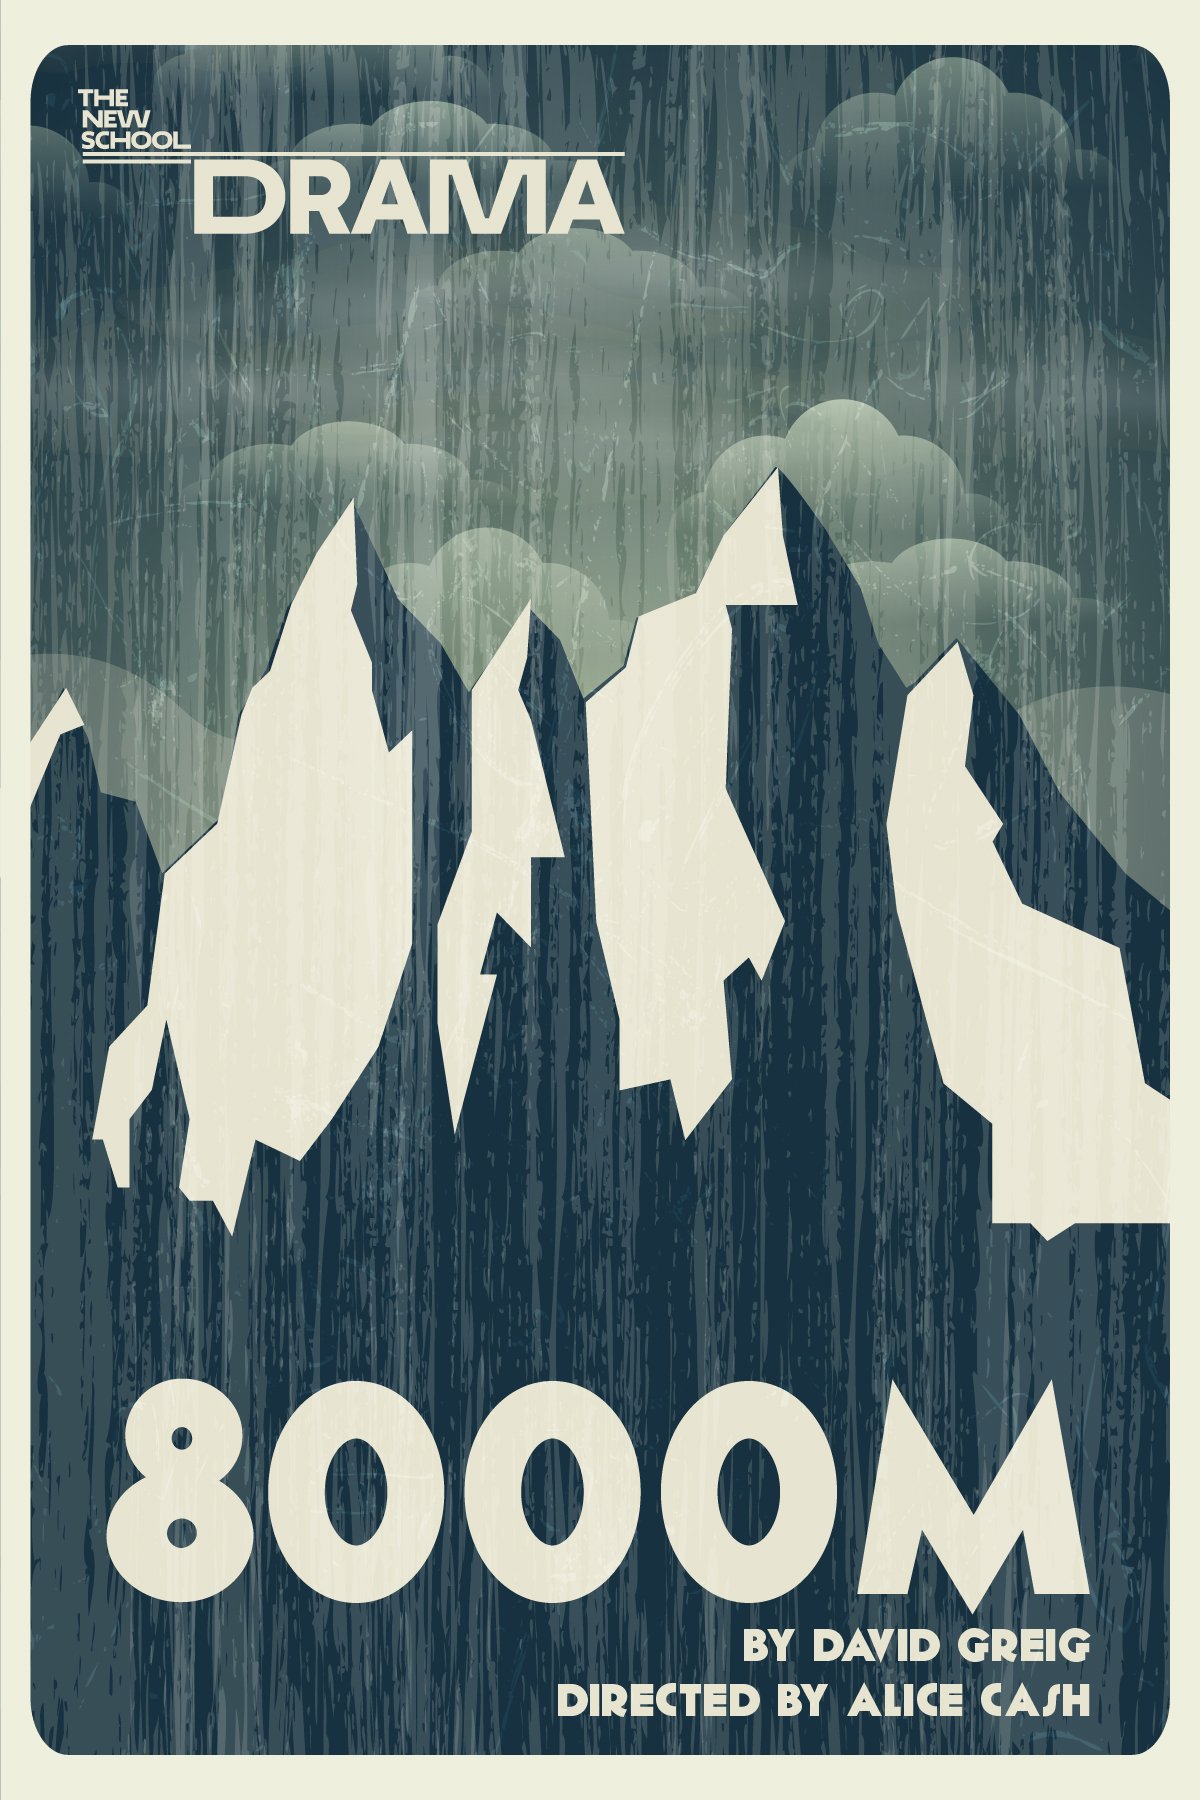 8000M - Theatre Poster, New School Drama